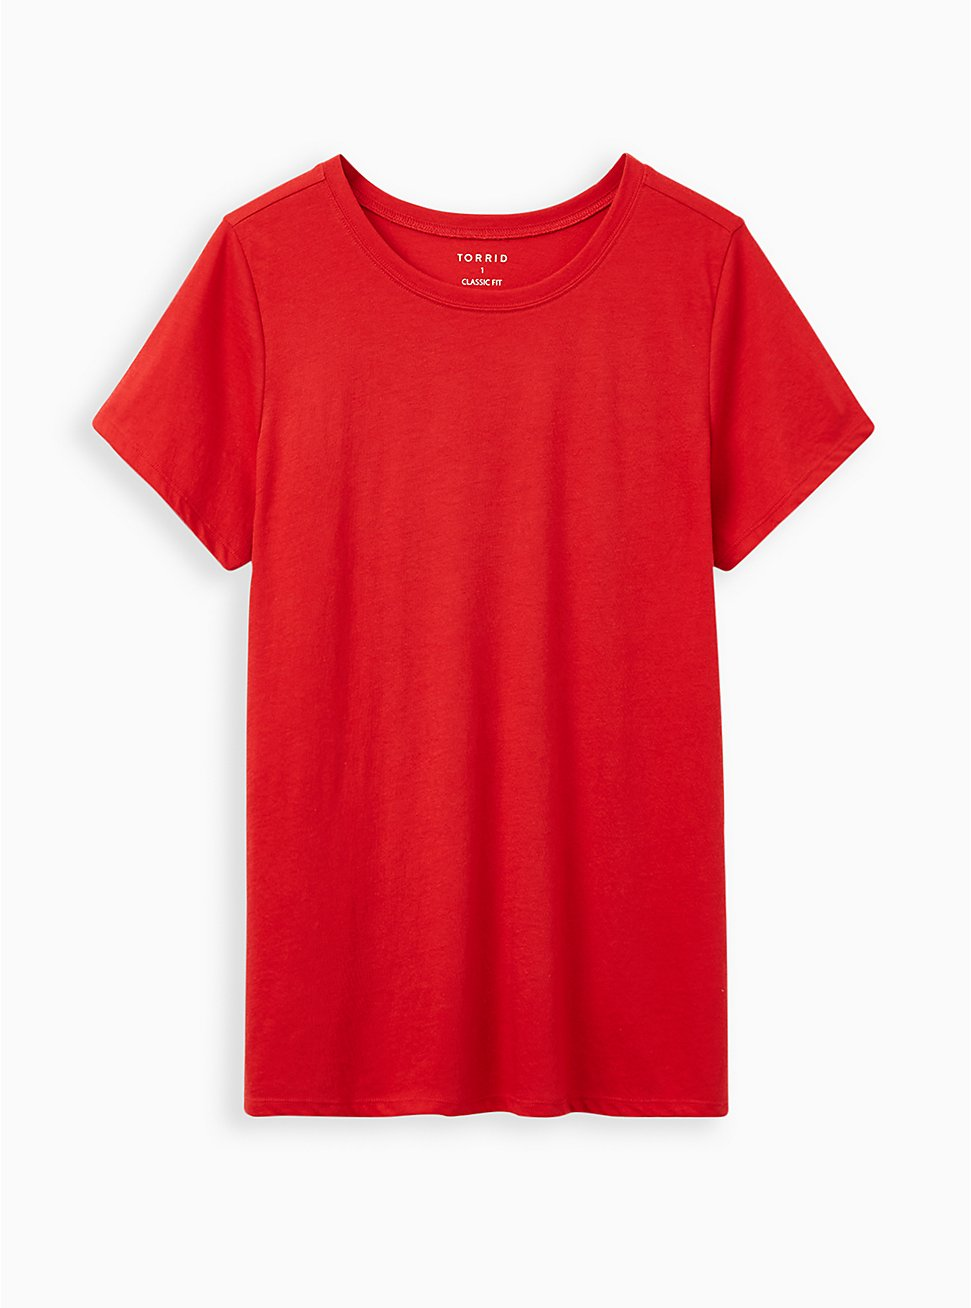 Everyday Tee - Signature Jersey Red, RED, hi-res